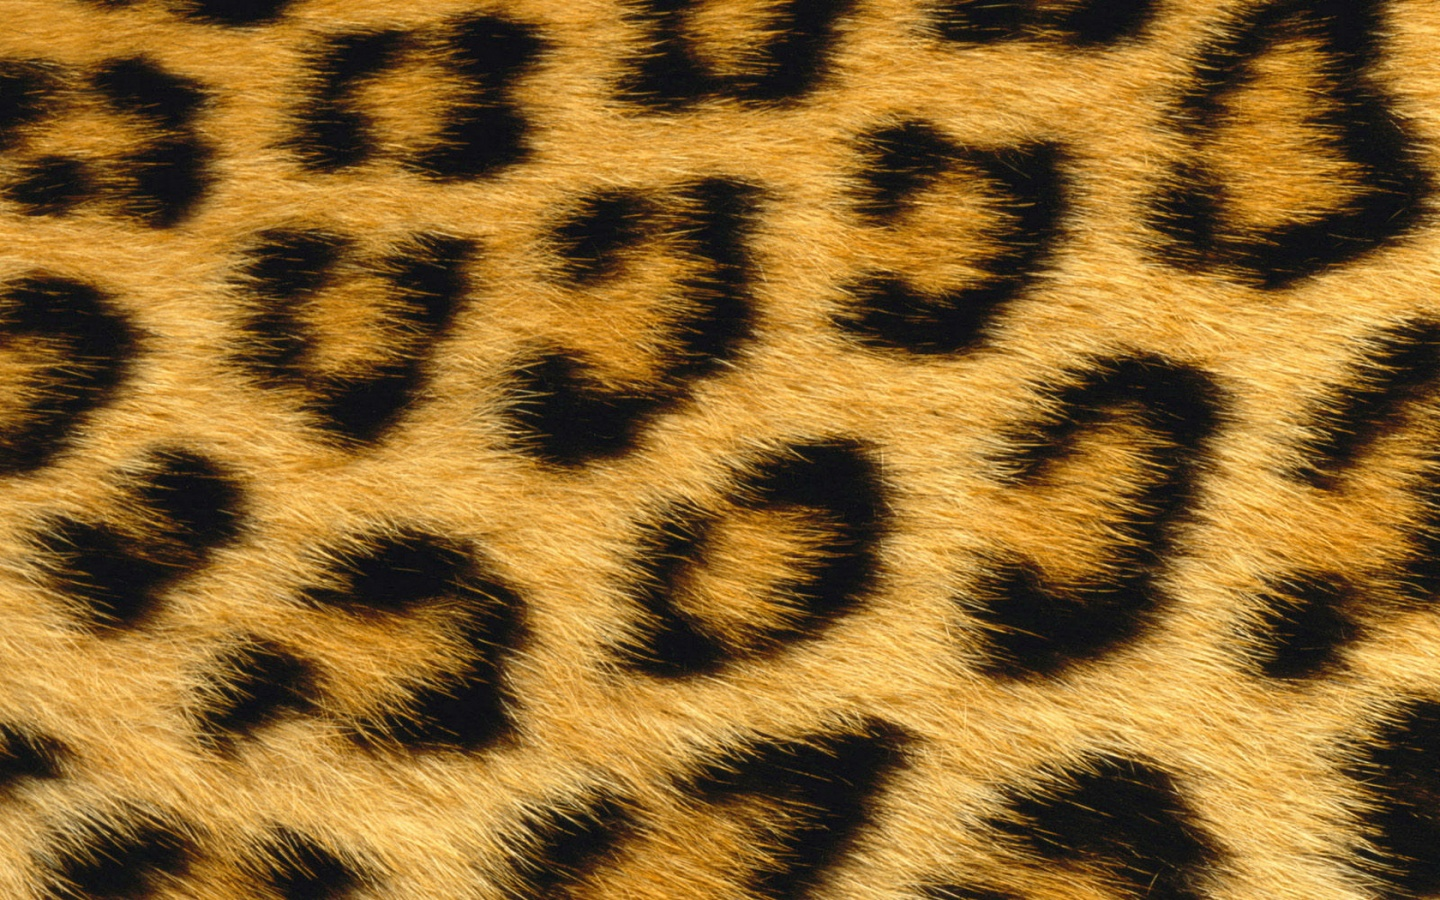 1440x900 leopard skin desktop pc and mac wallpaper